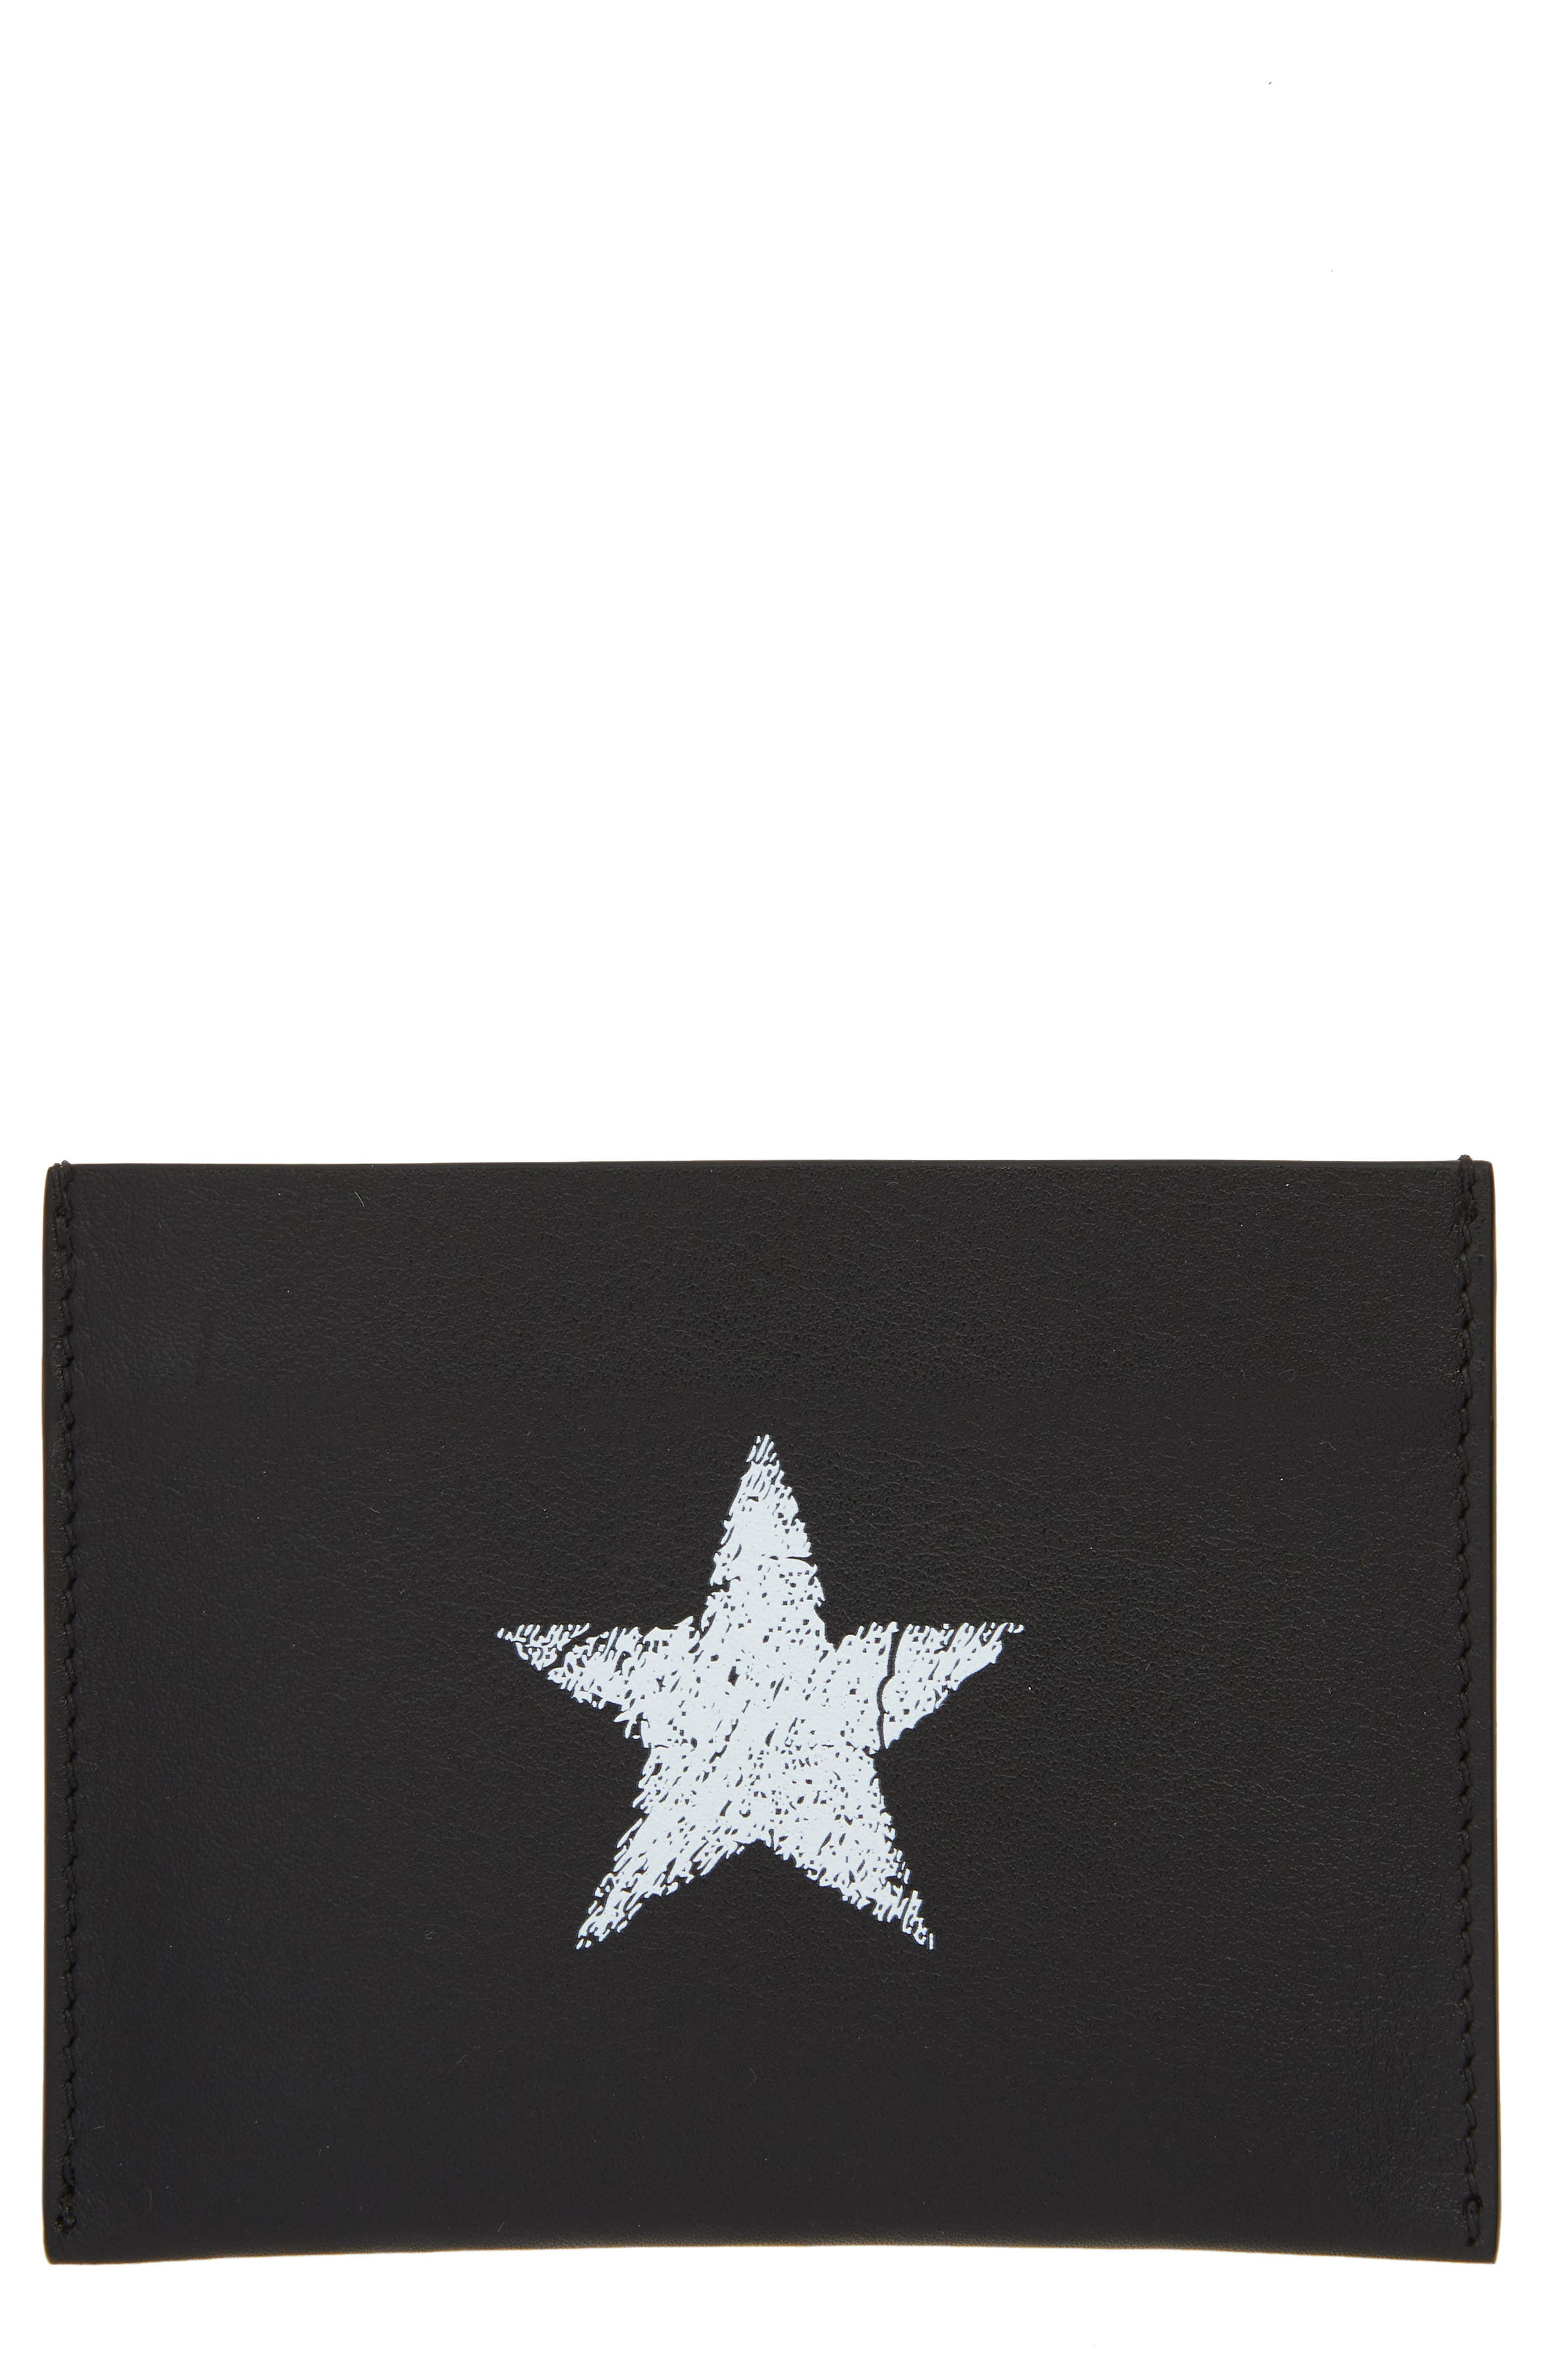 Blurred Star Leather Card Holder,                         Main,                         color, 001